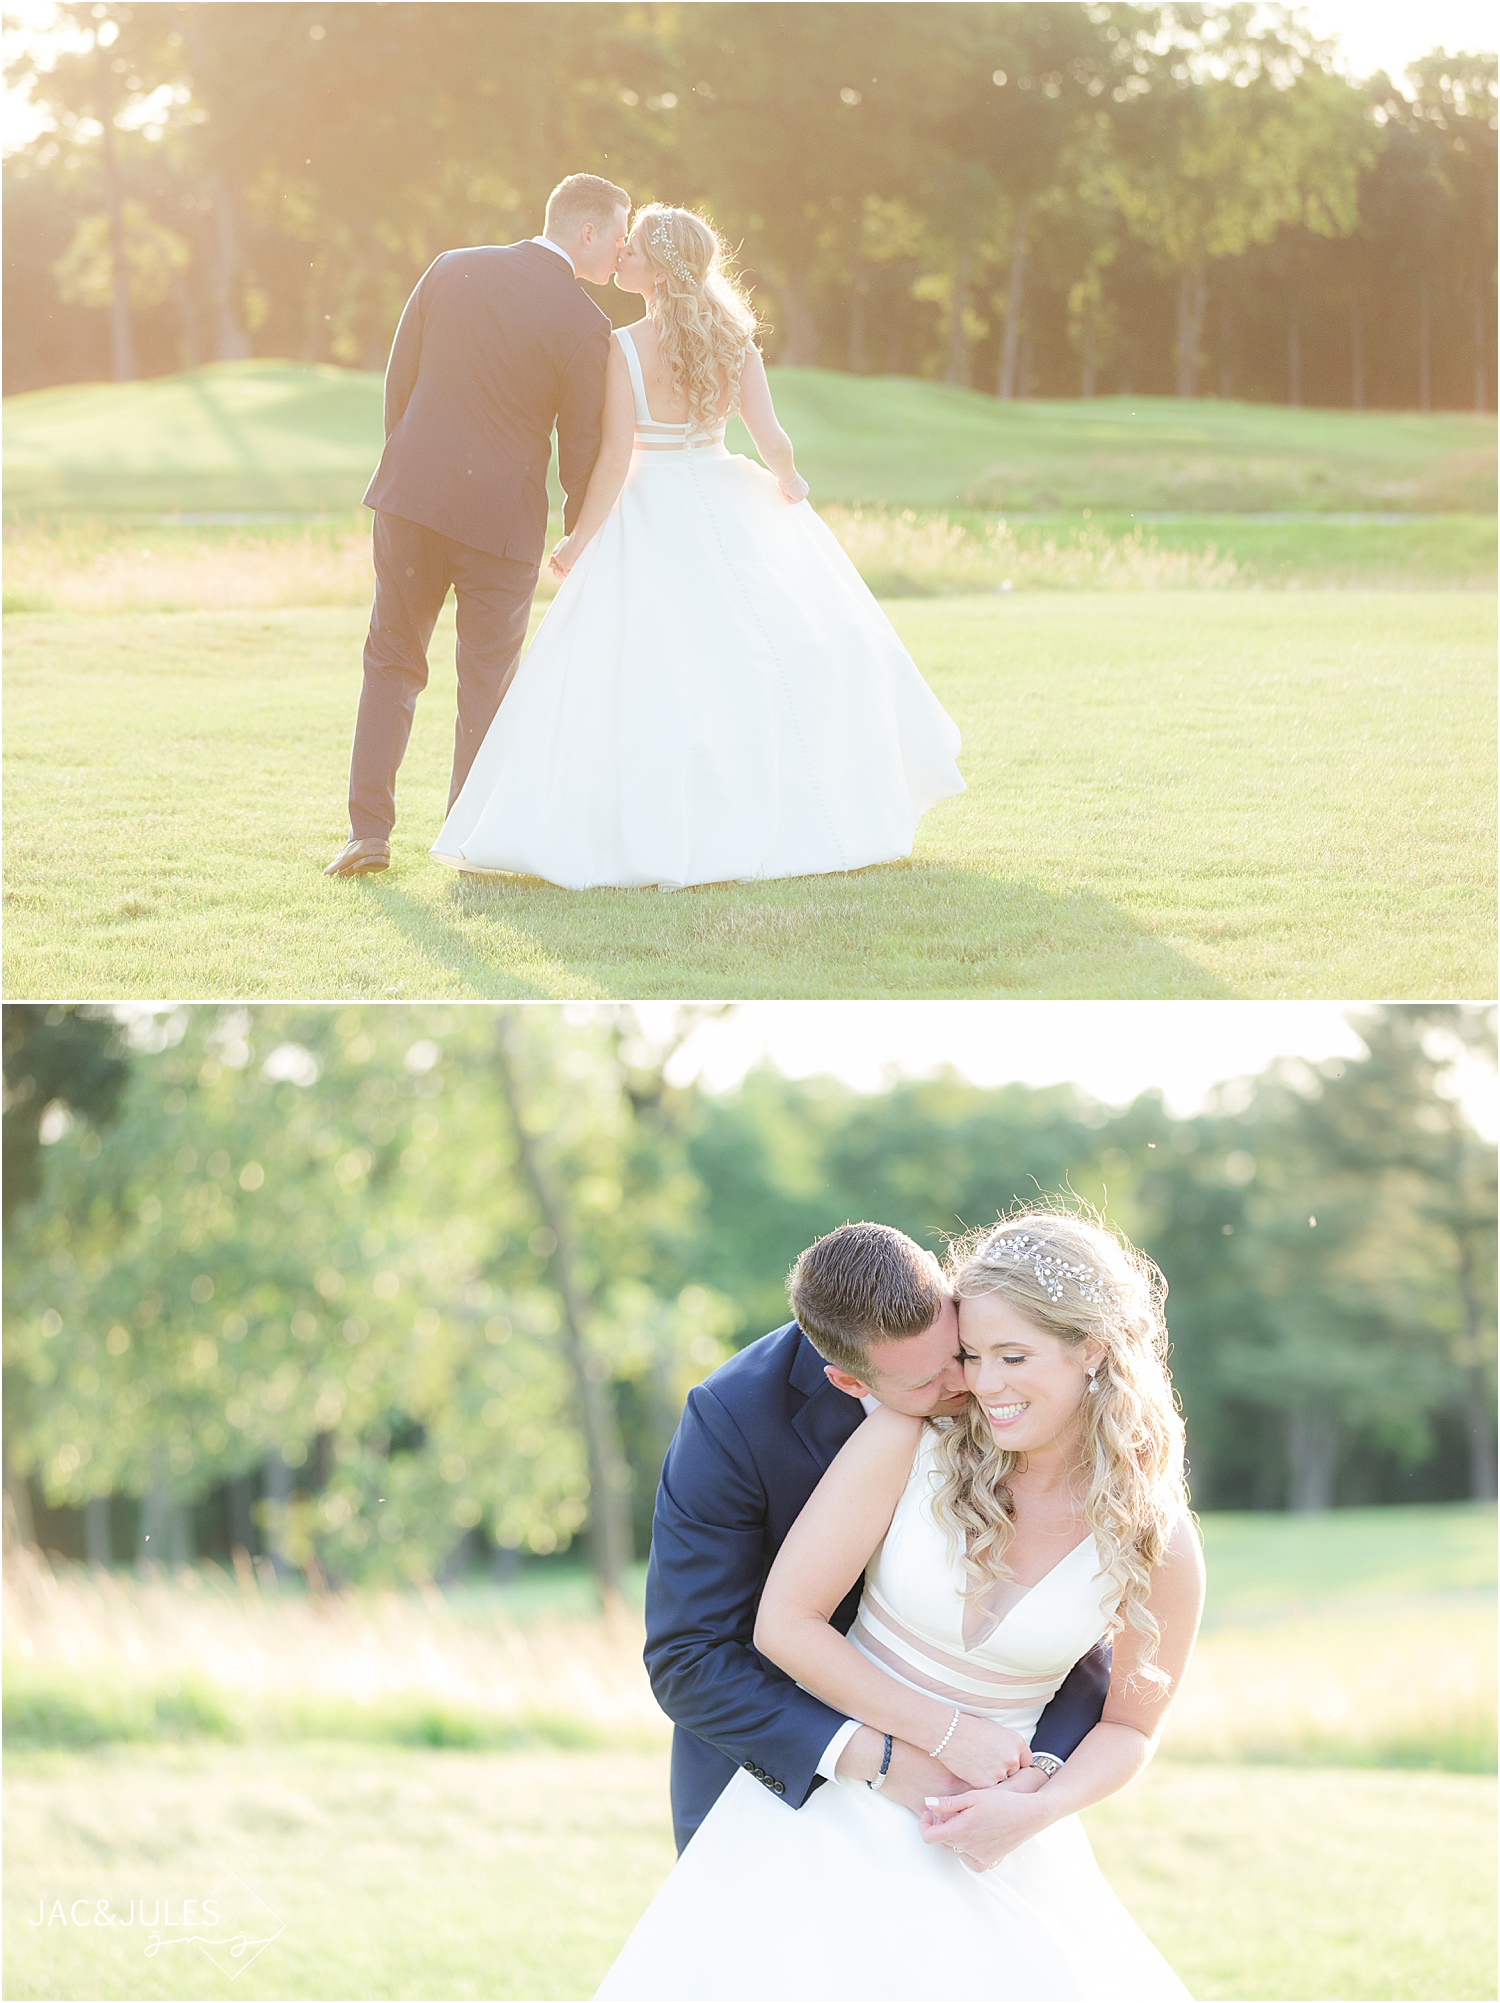 romantic sunset photos of bride and groom at north jersey country club wedding